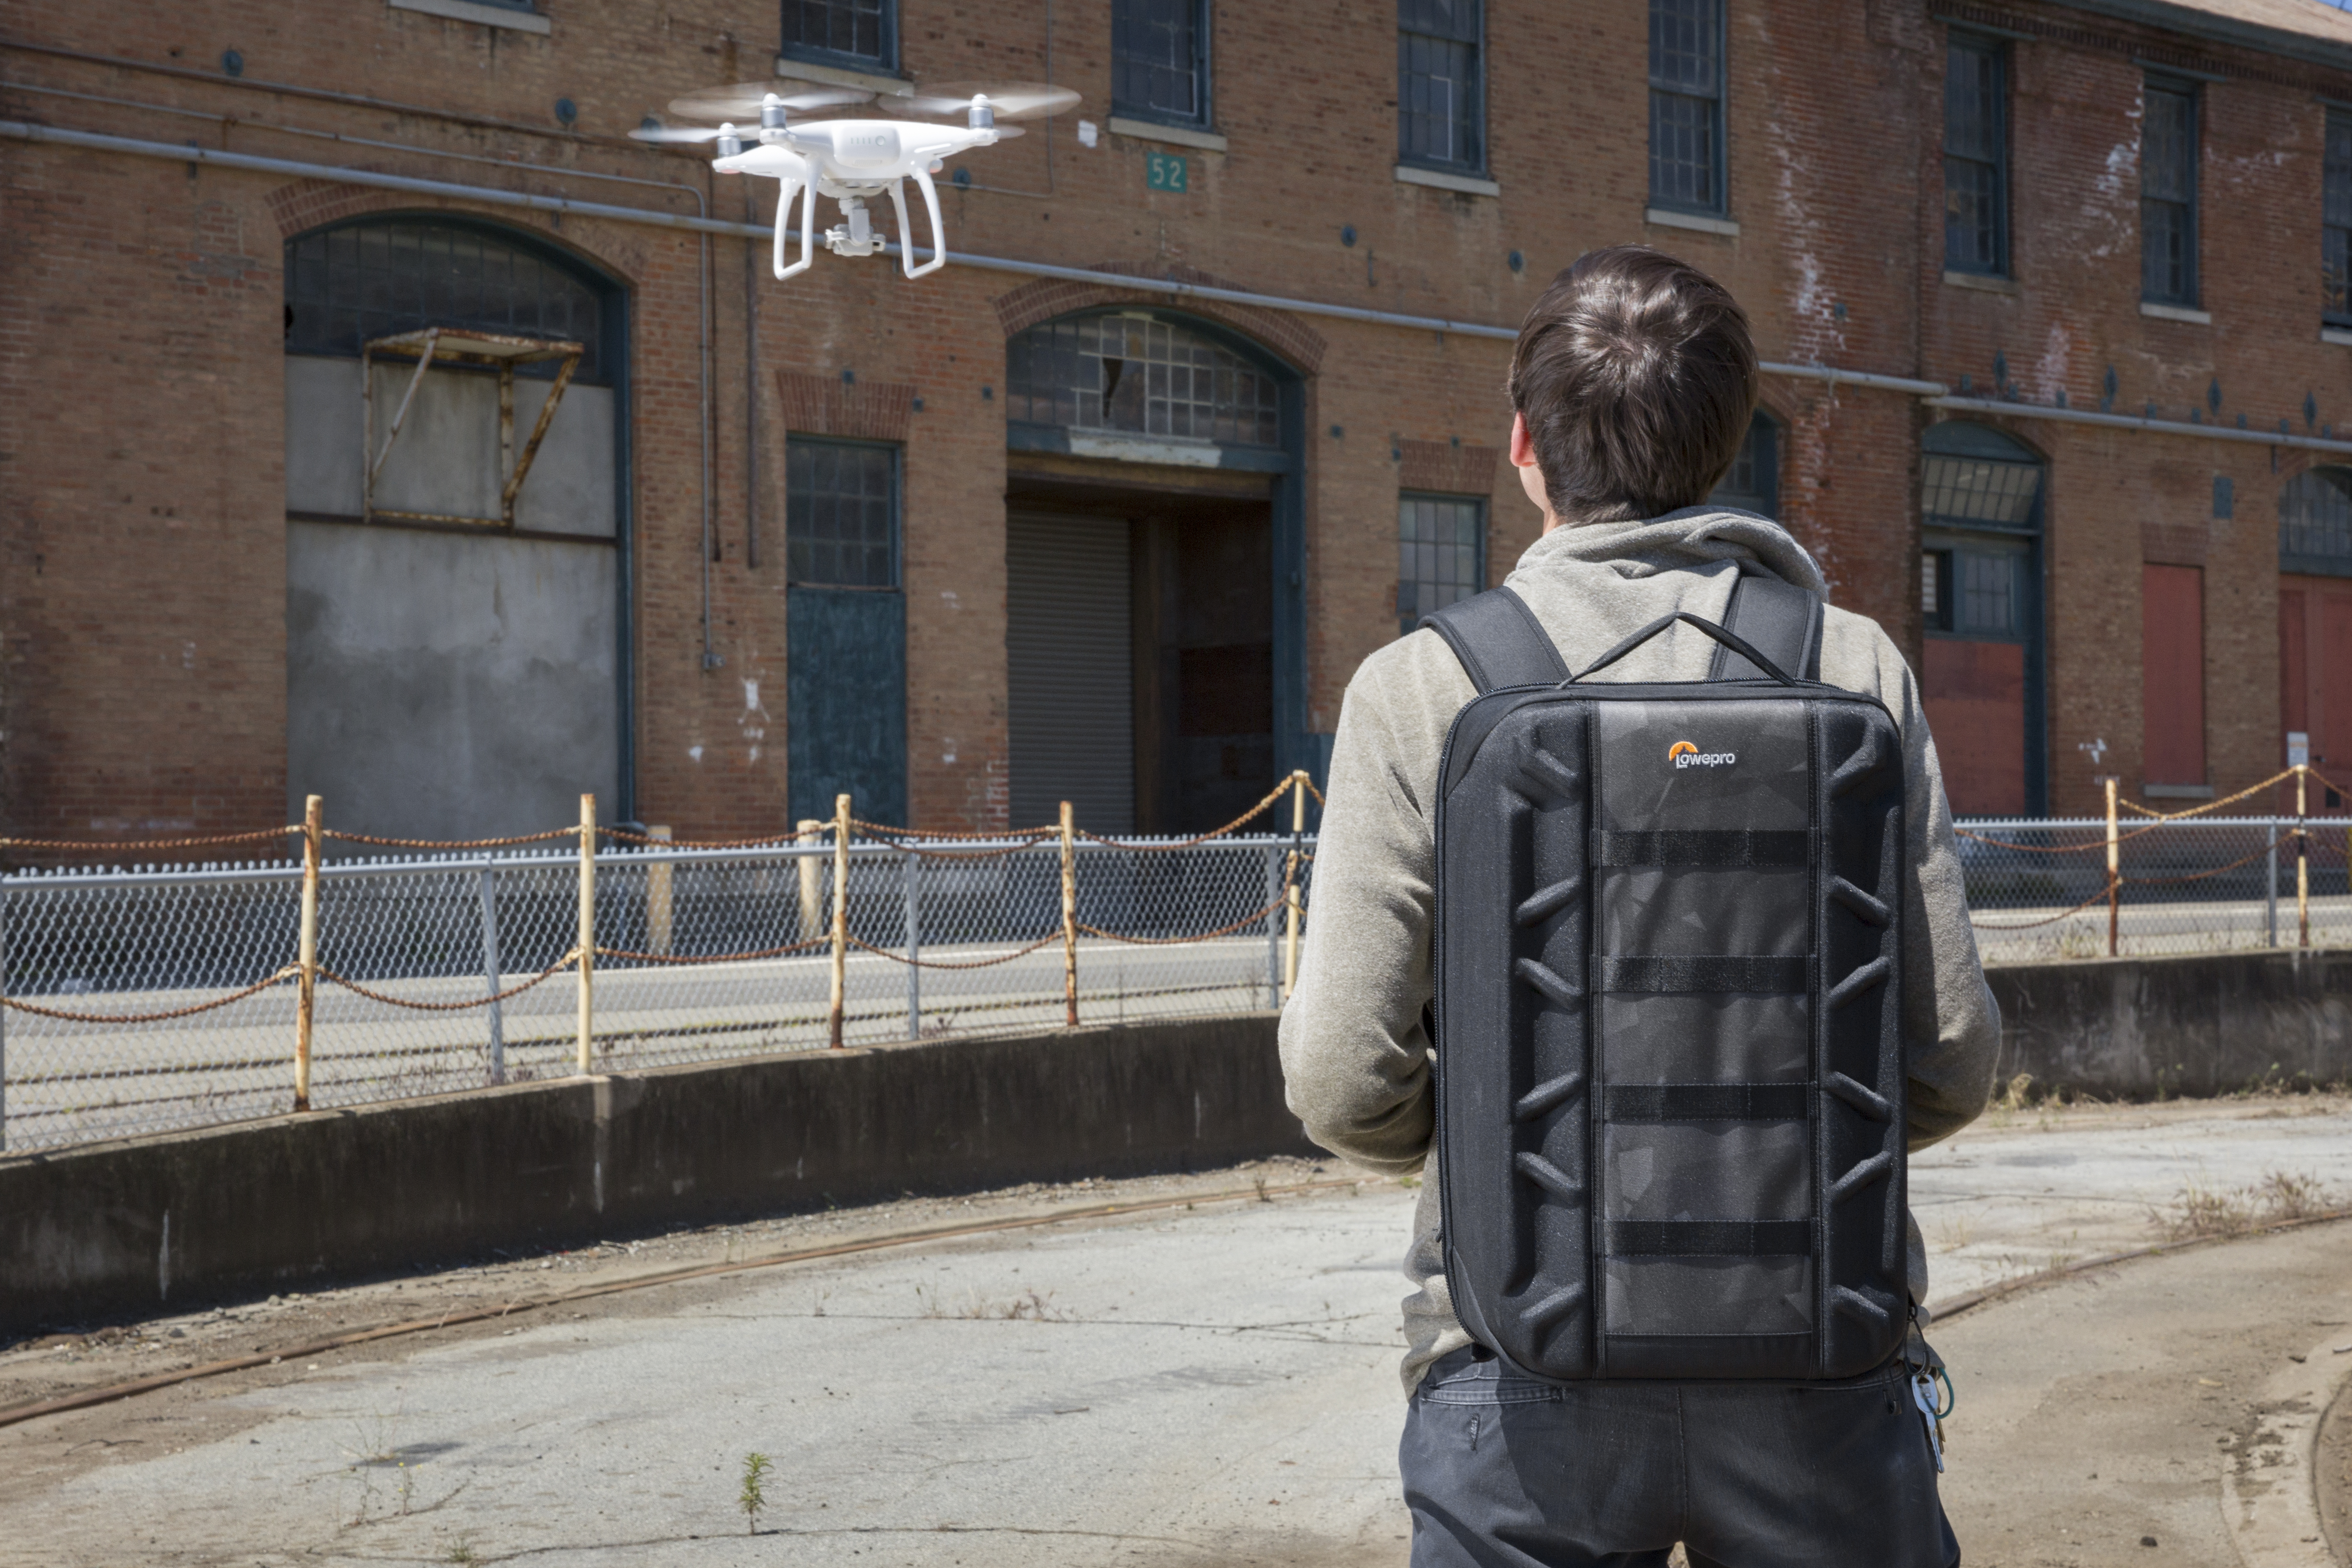 Enter to win LowePro's new DroneGuard Pro Inspired